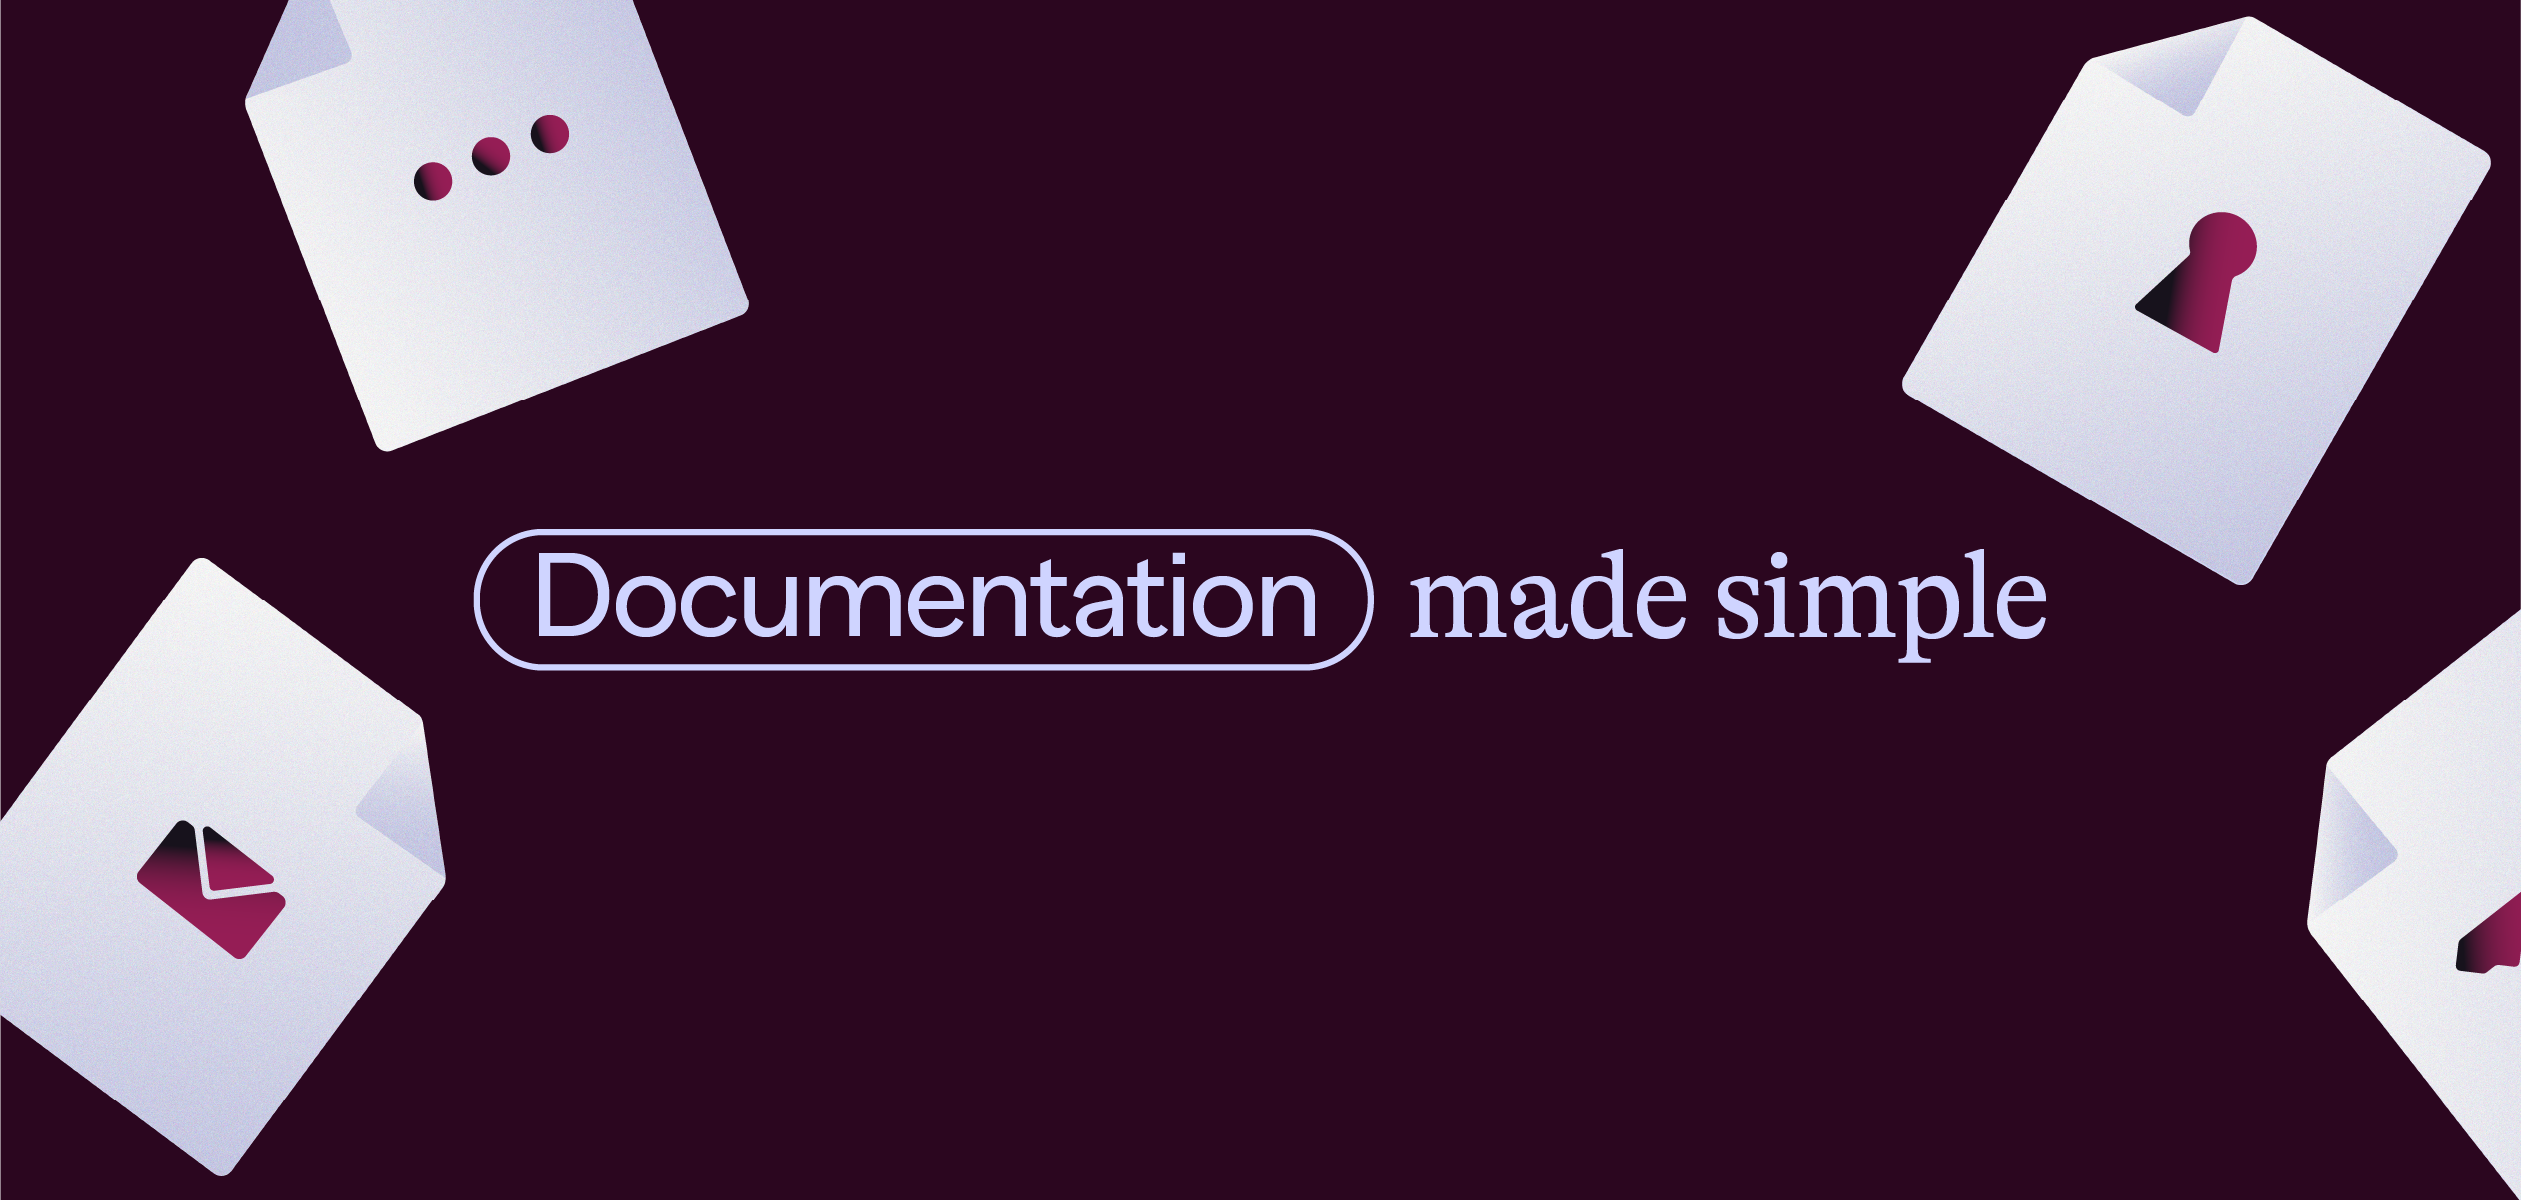 Documentation made simple